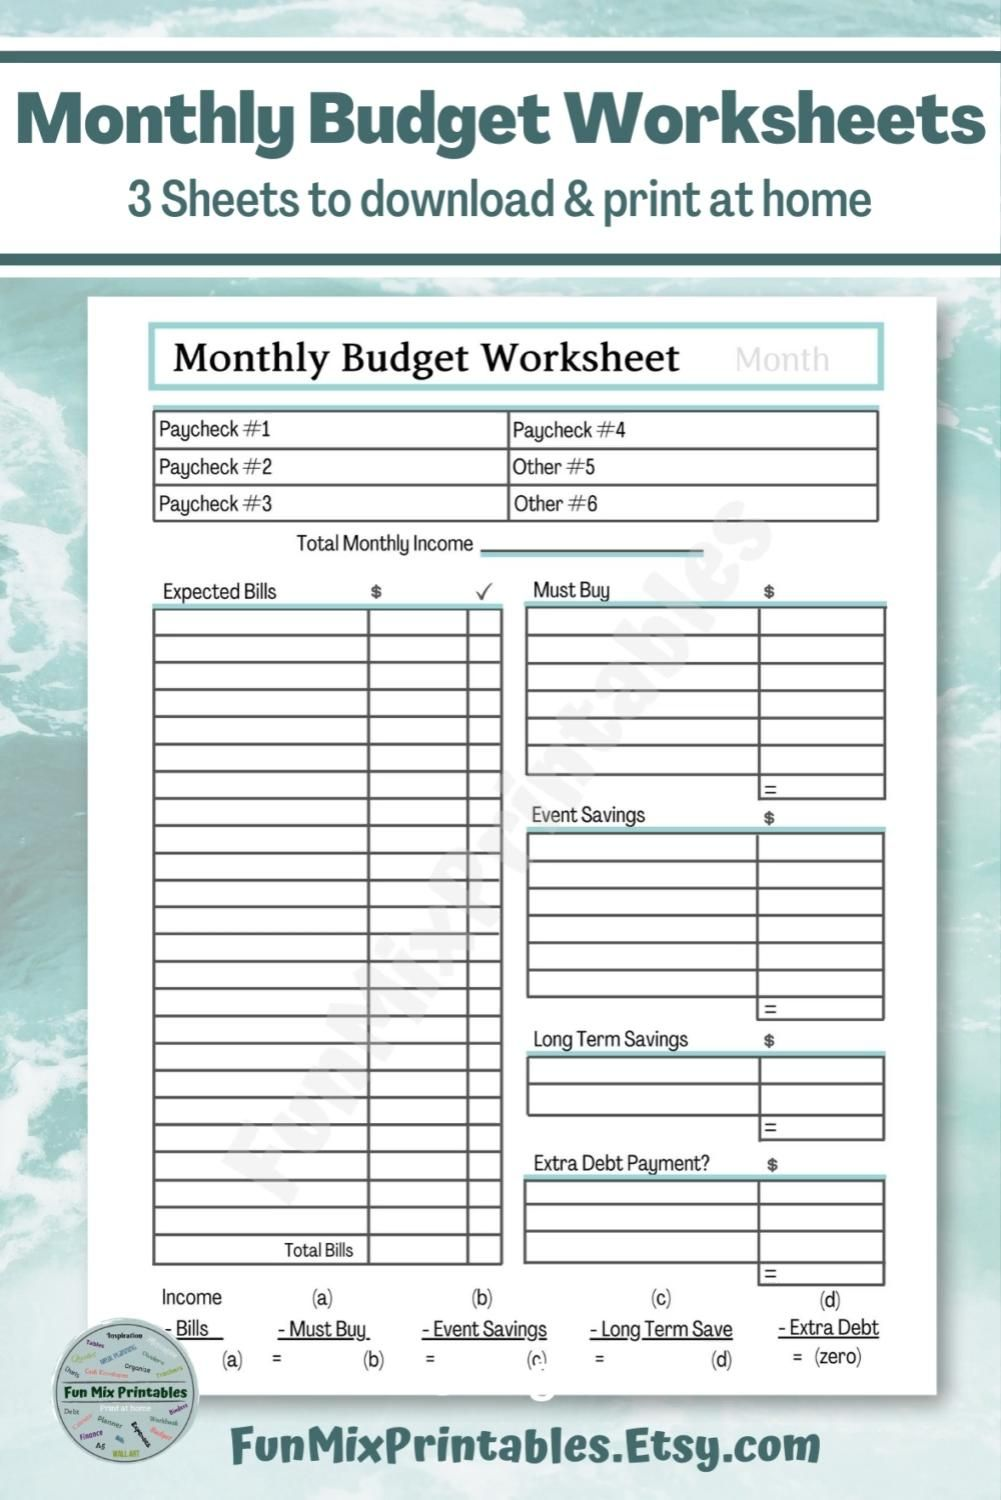 Monthly Budget Worksheets Printable Video Video In 2021 Budgeting Monthly Budget Template Budgeting Worksheets